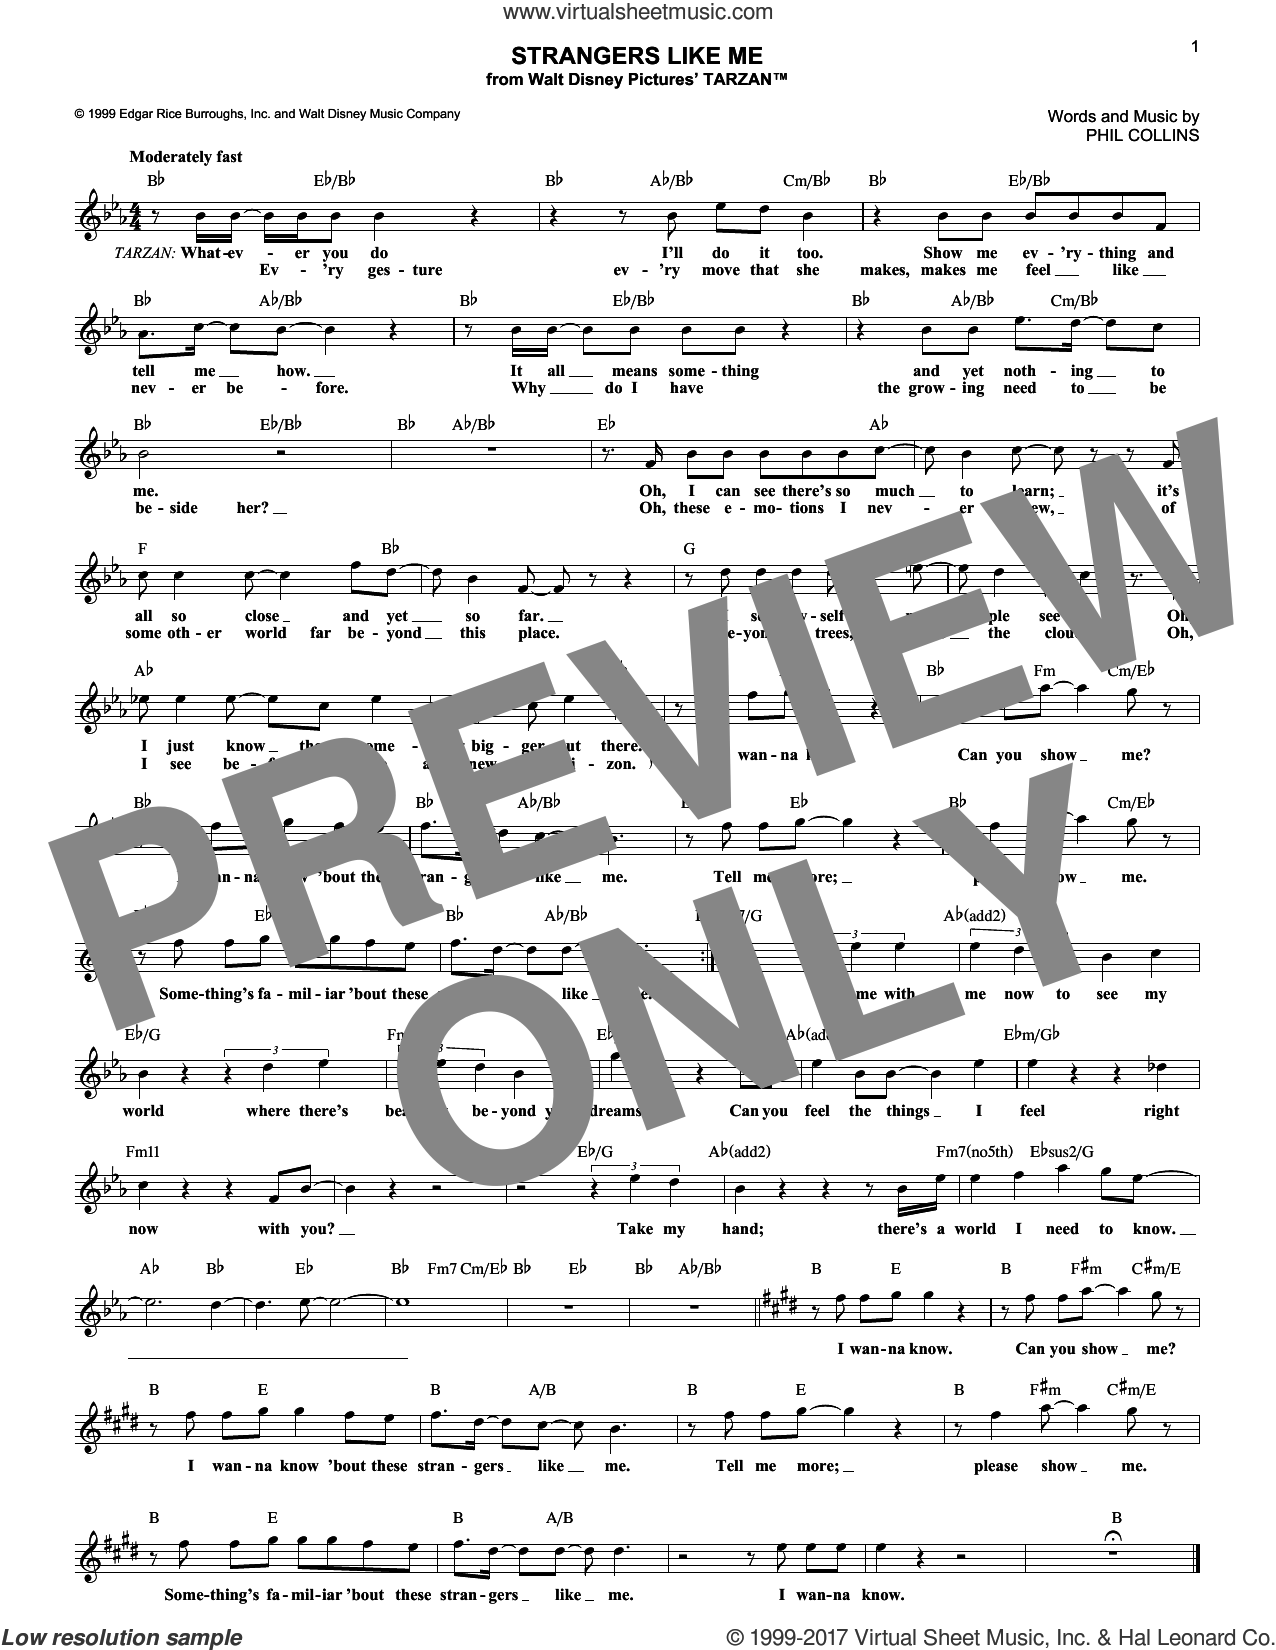 Strangers Like Me sheet music for voice and other instruments (fake book) by Phil Collins. Score Image Preview.